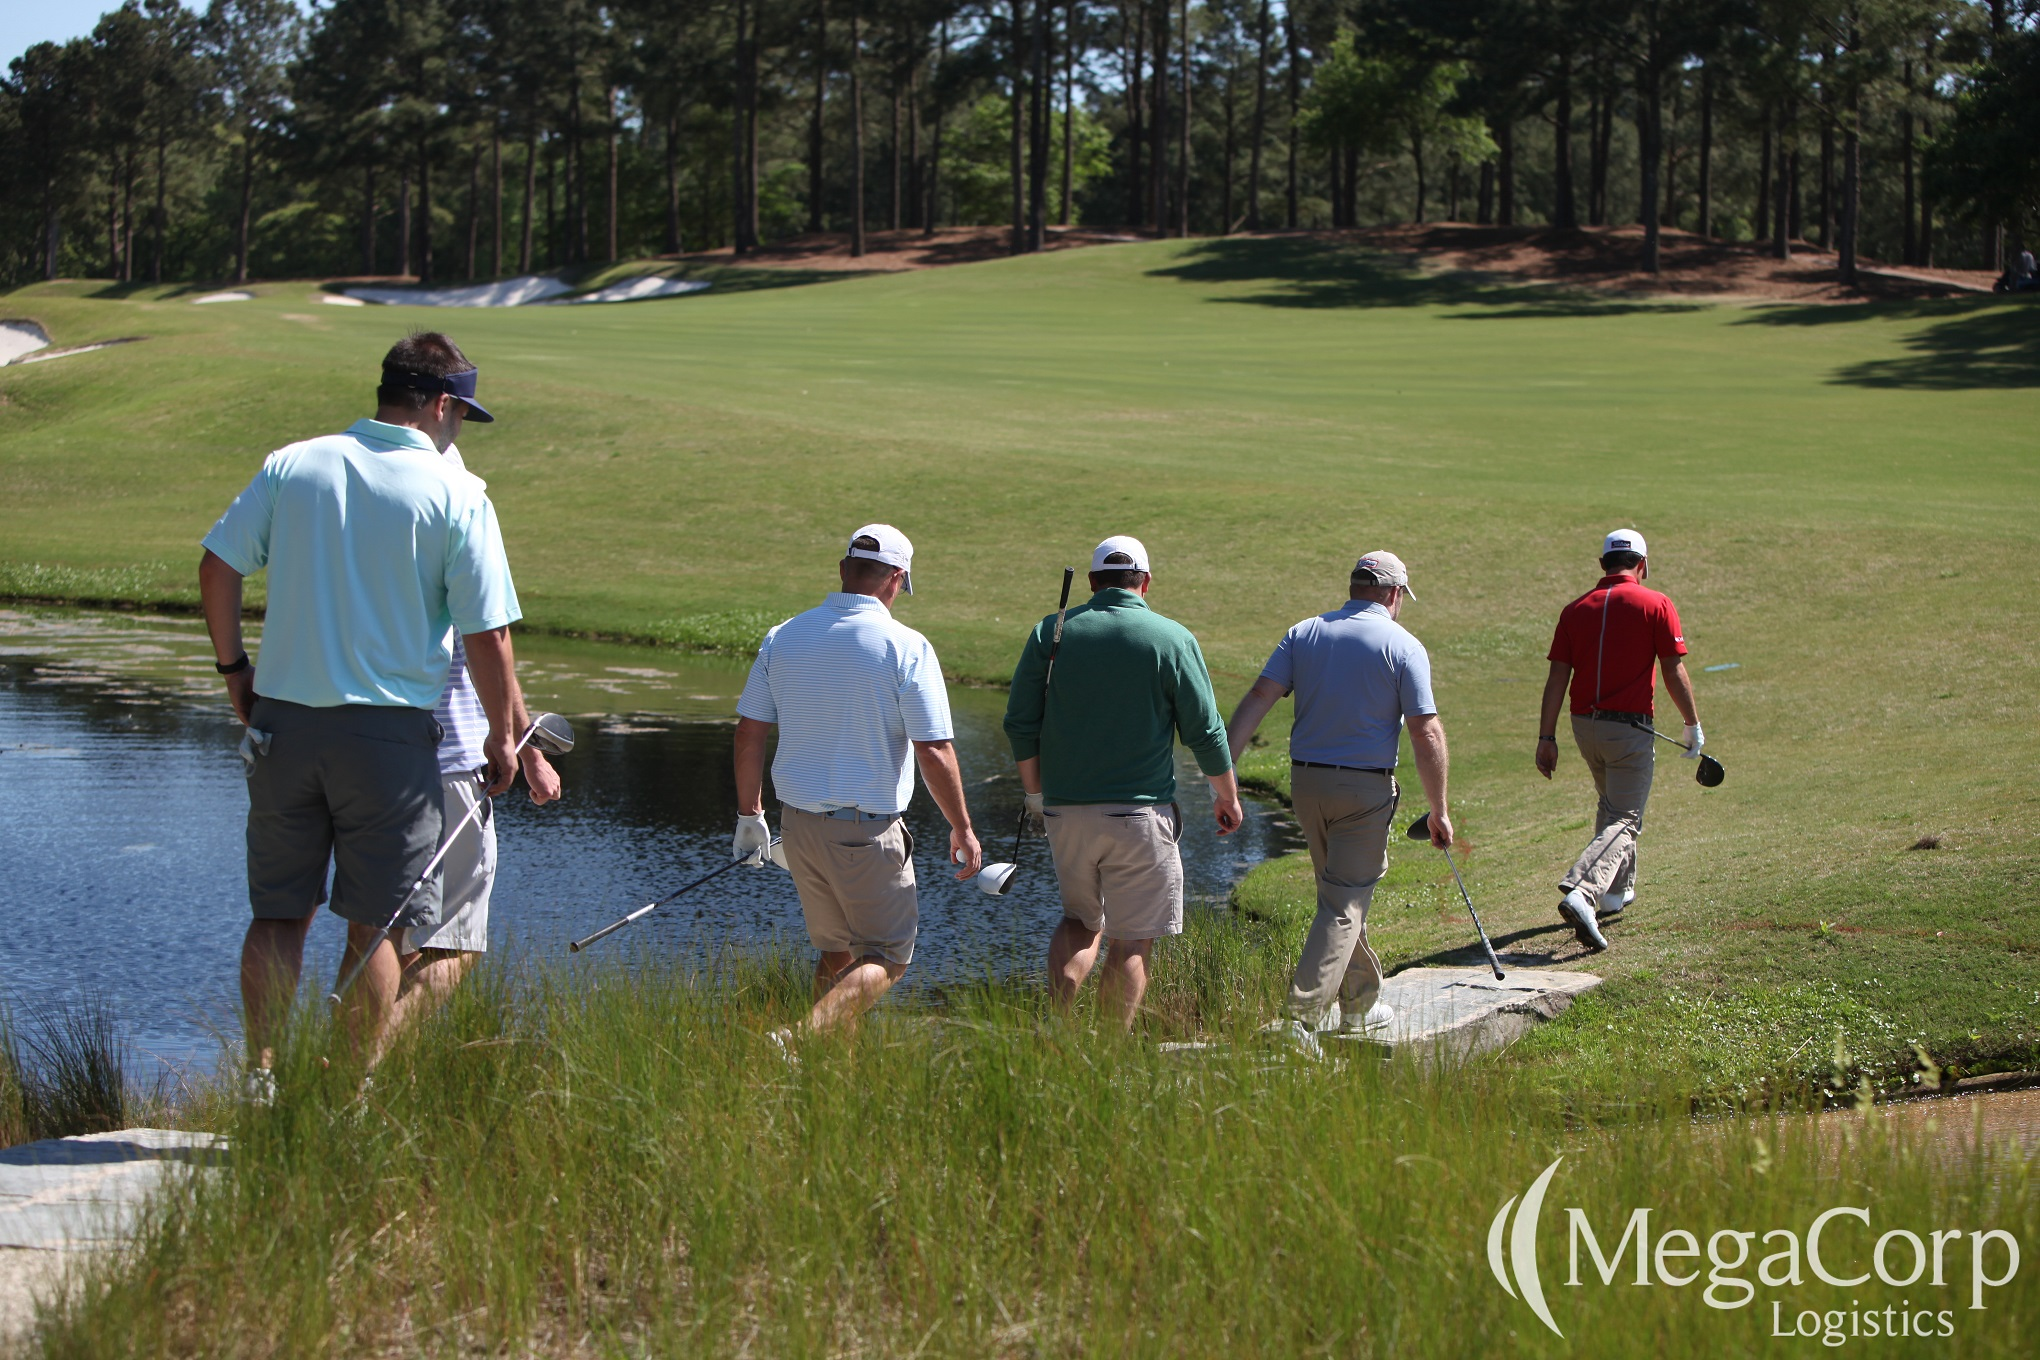 Six men, carrying golf clubs while walking by a golf course pond.